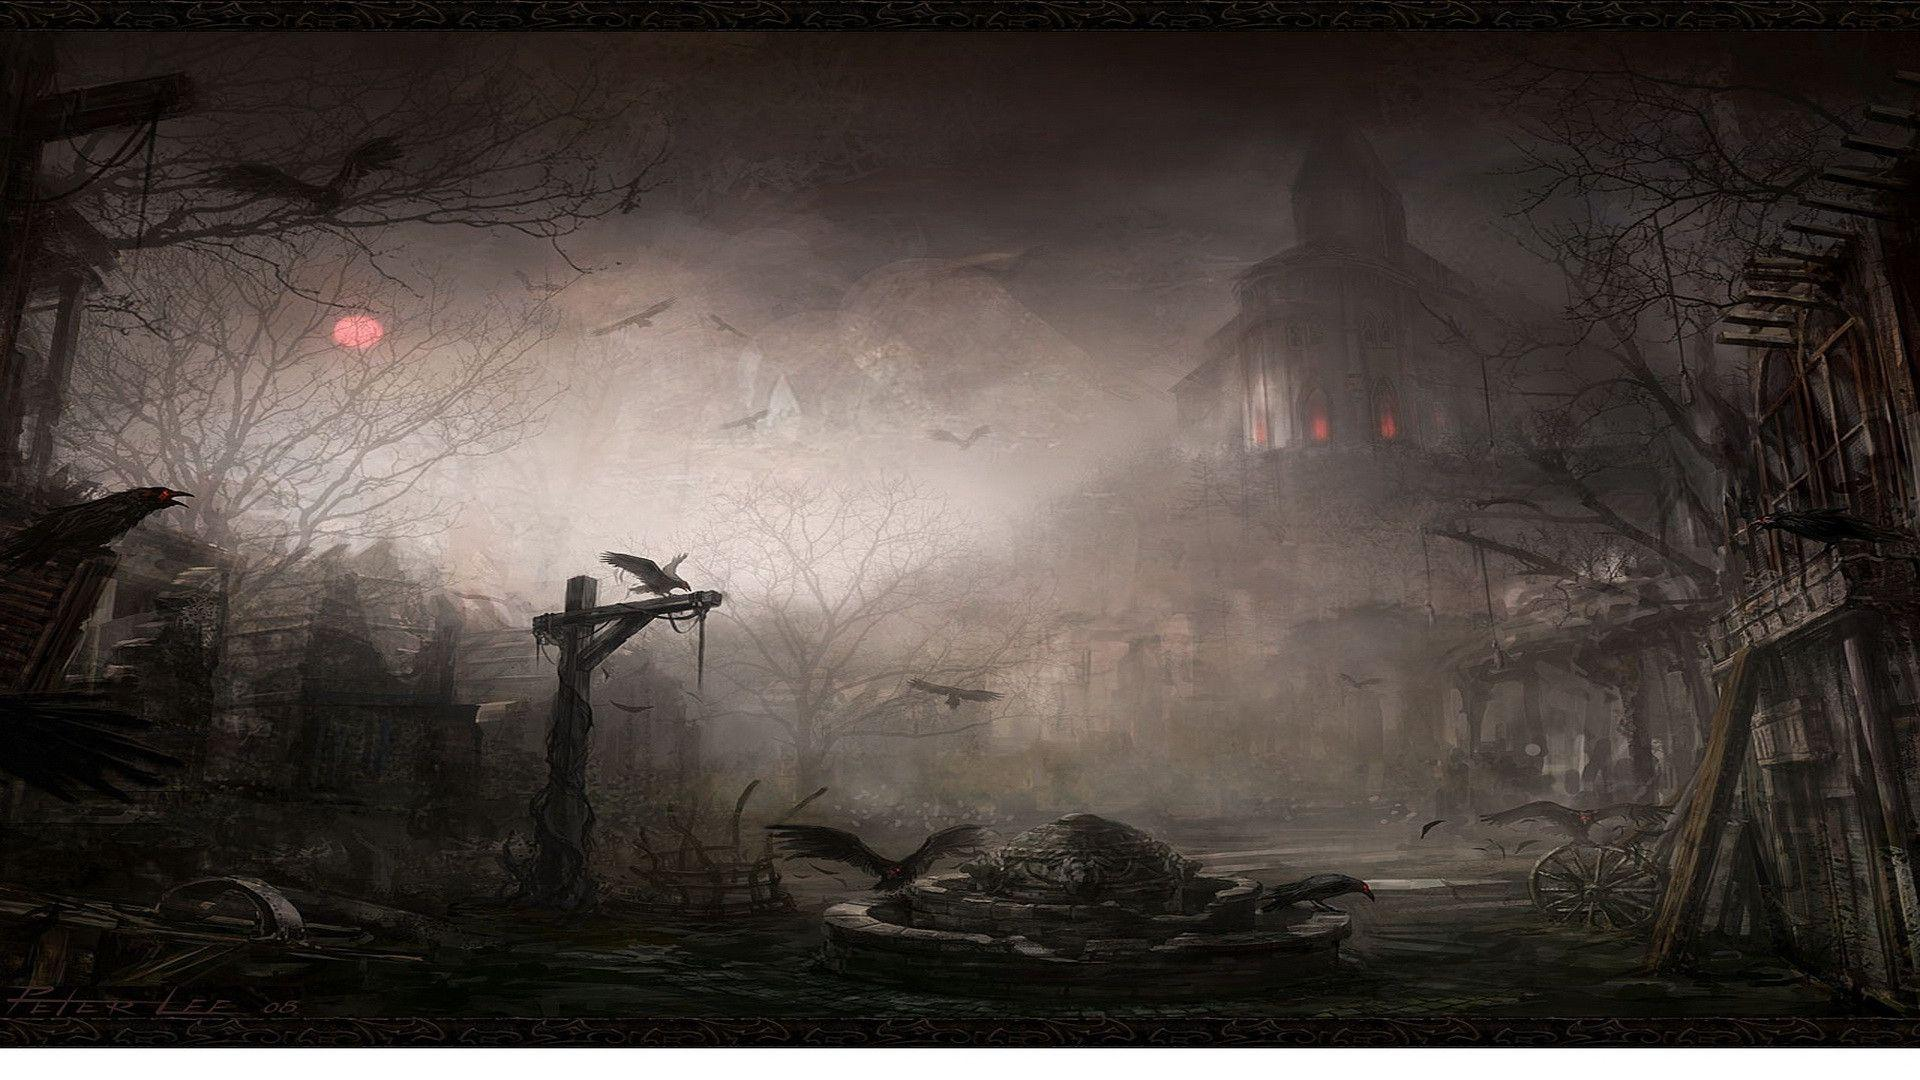 Spooky Background - PowerPoint Backgrounds for Free PowerPoint Templates